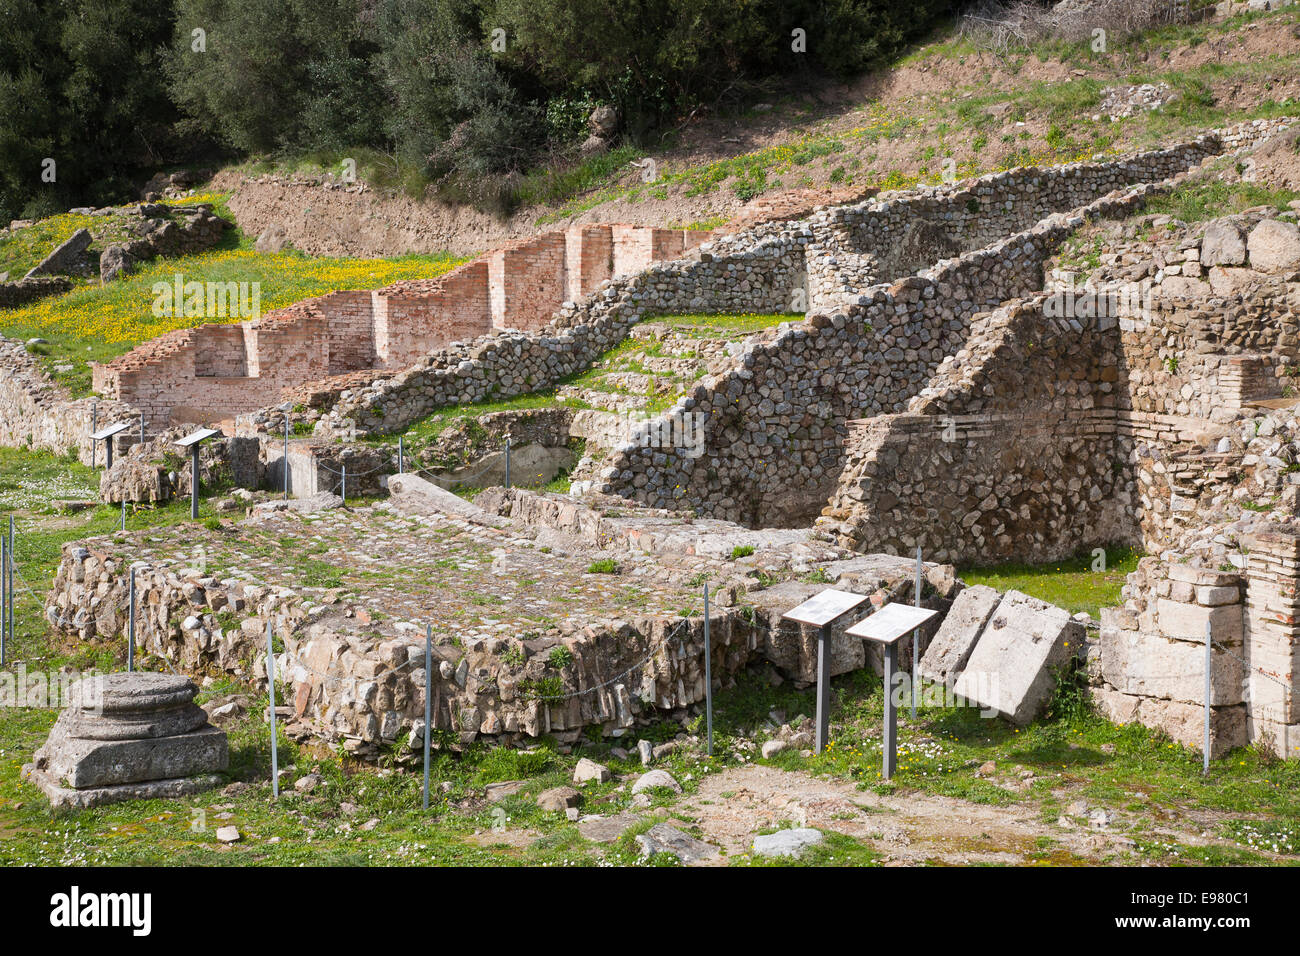 etruscan ruins, archaeological site, roselle, grosseto province, tuscany, italy, europe - Stock Image